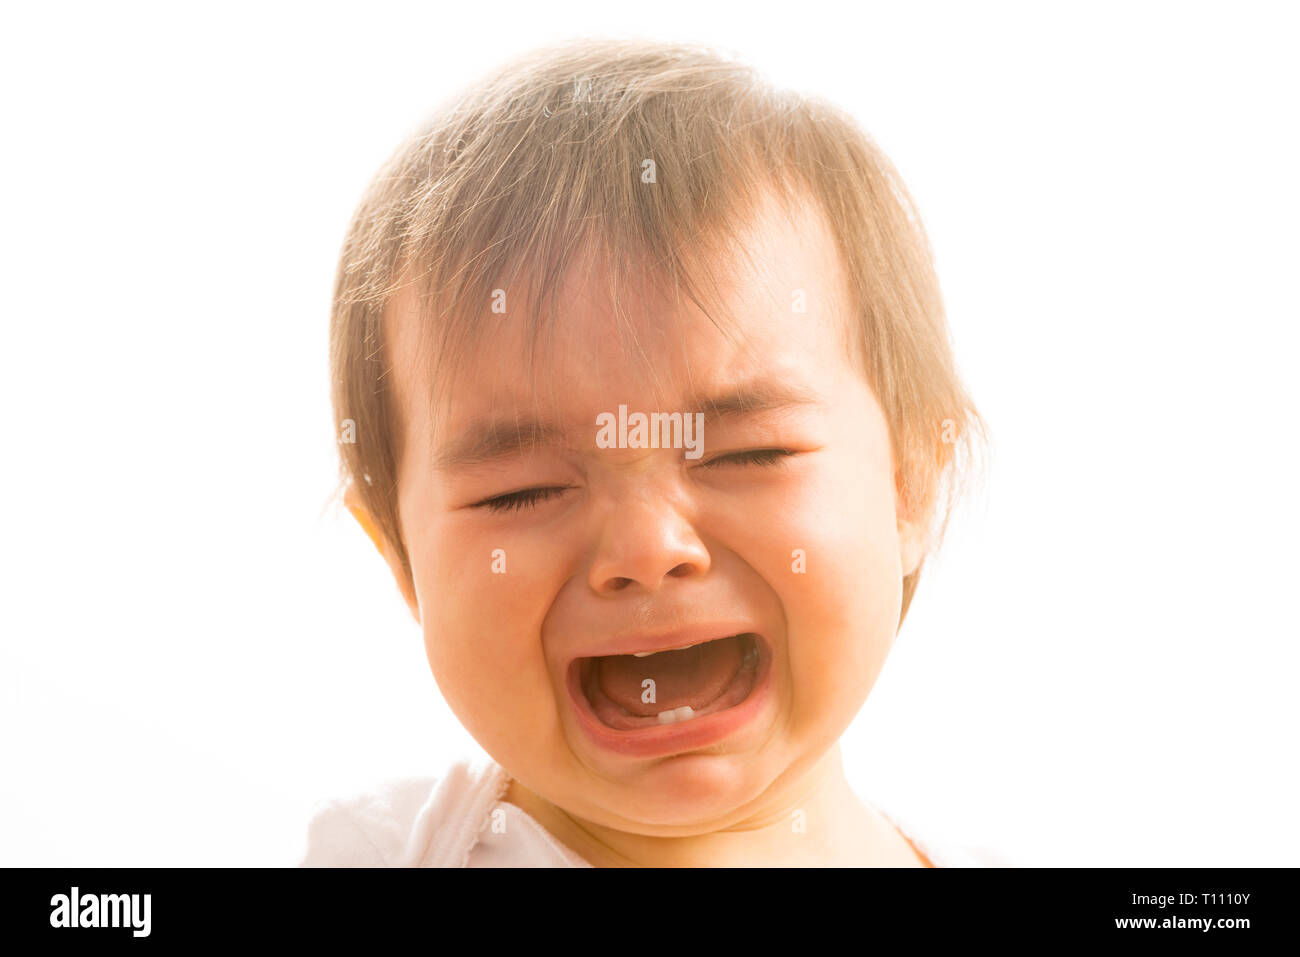 Close up of a 1 year old baby girl crying - Stock Image